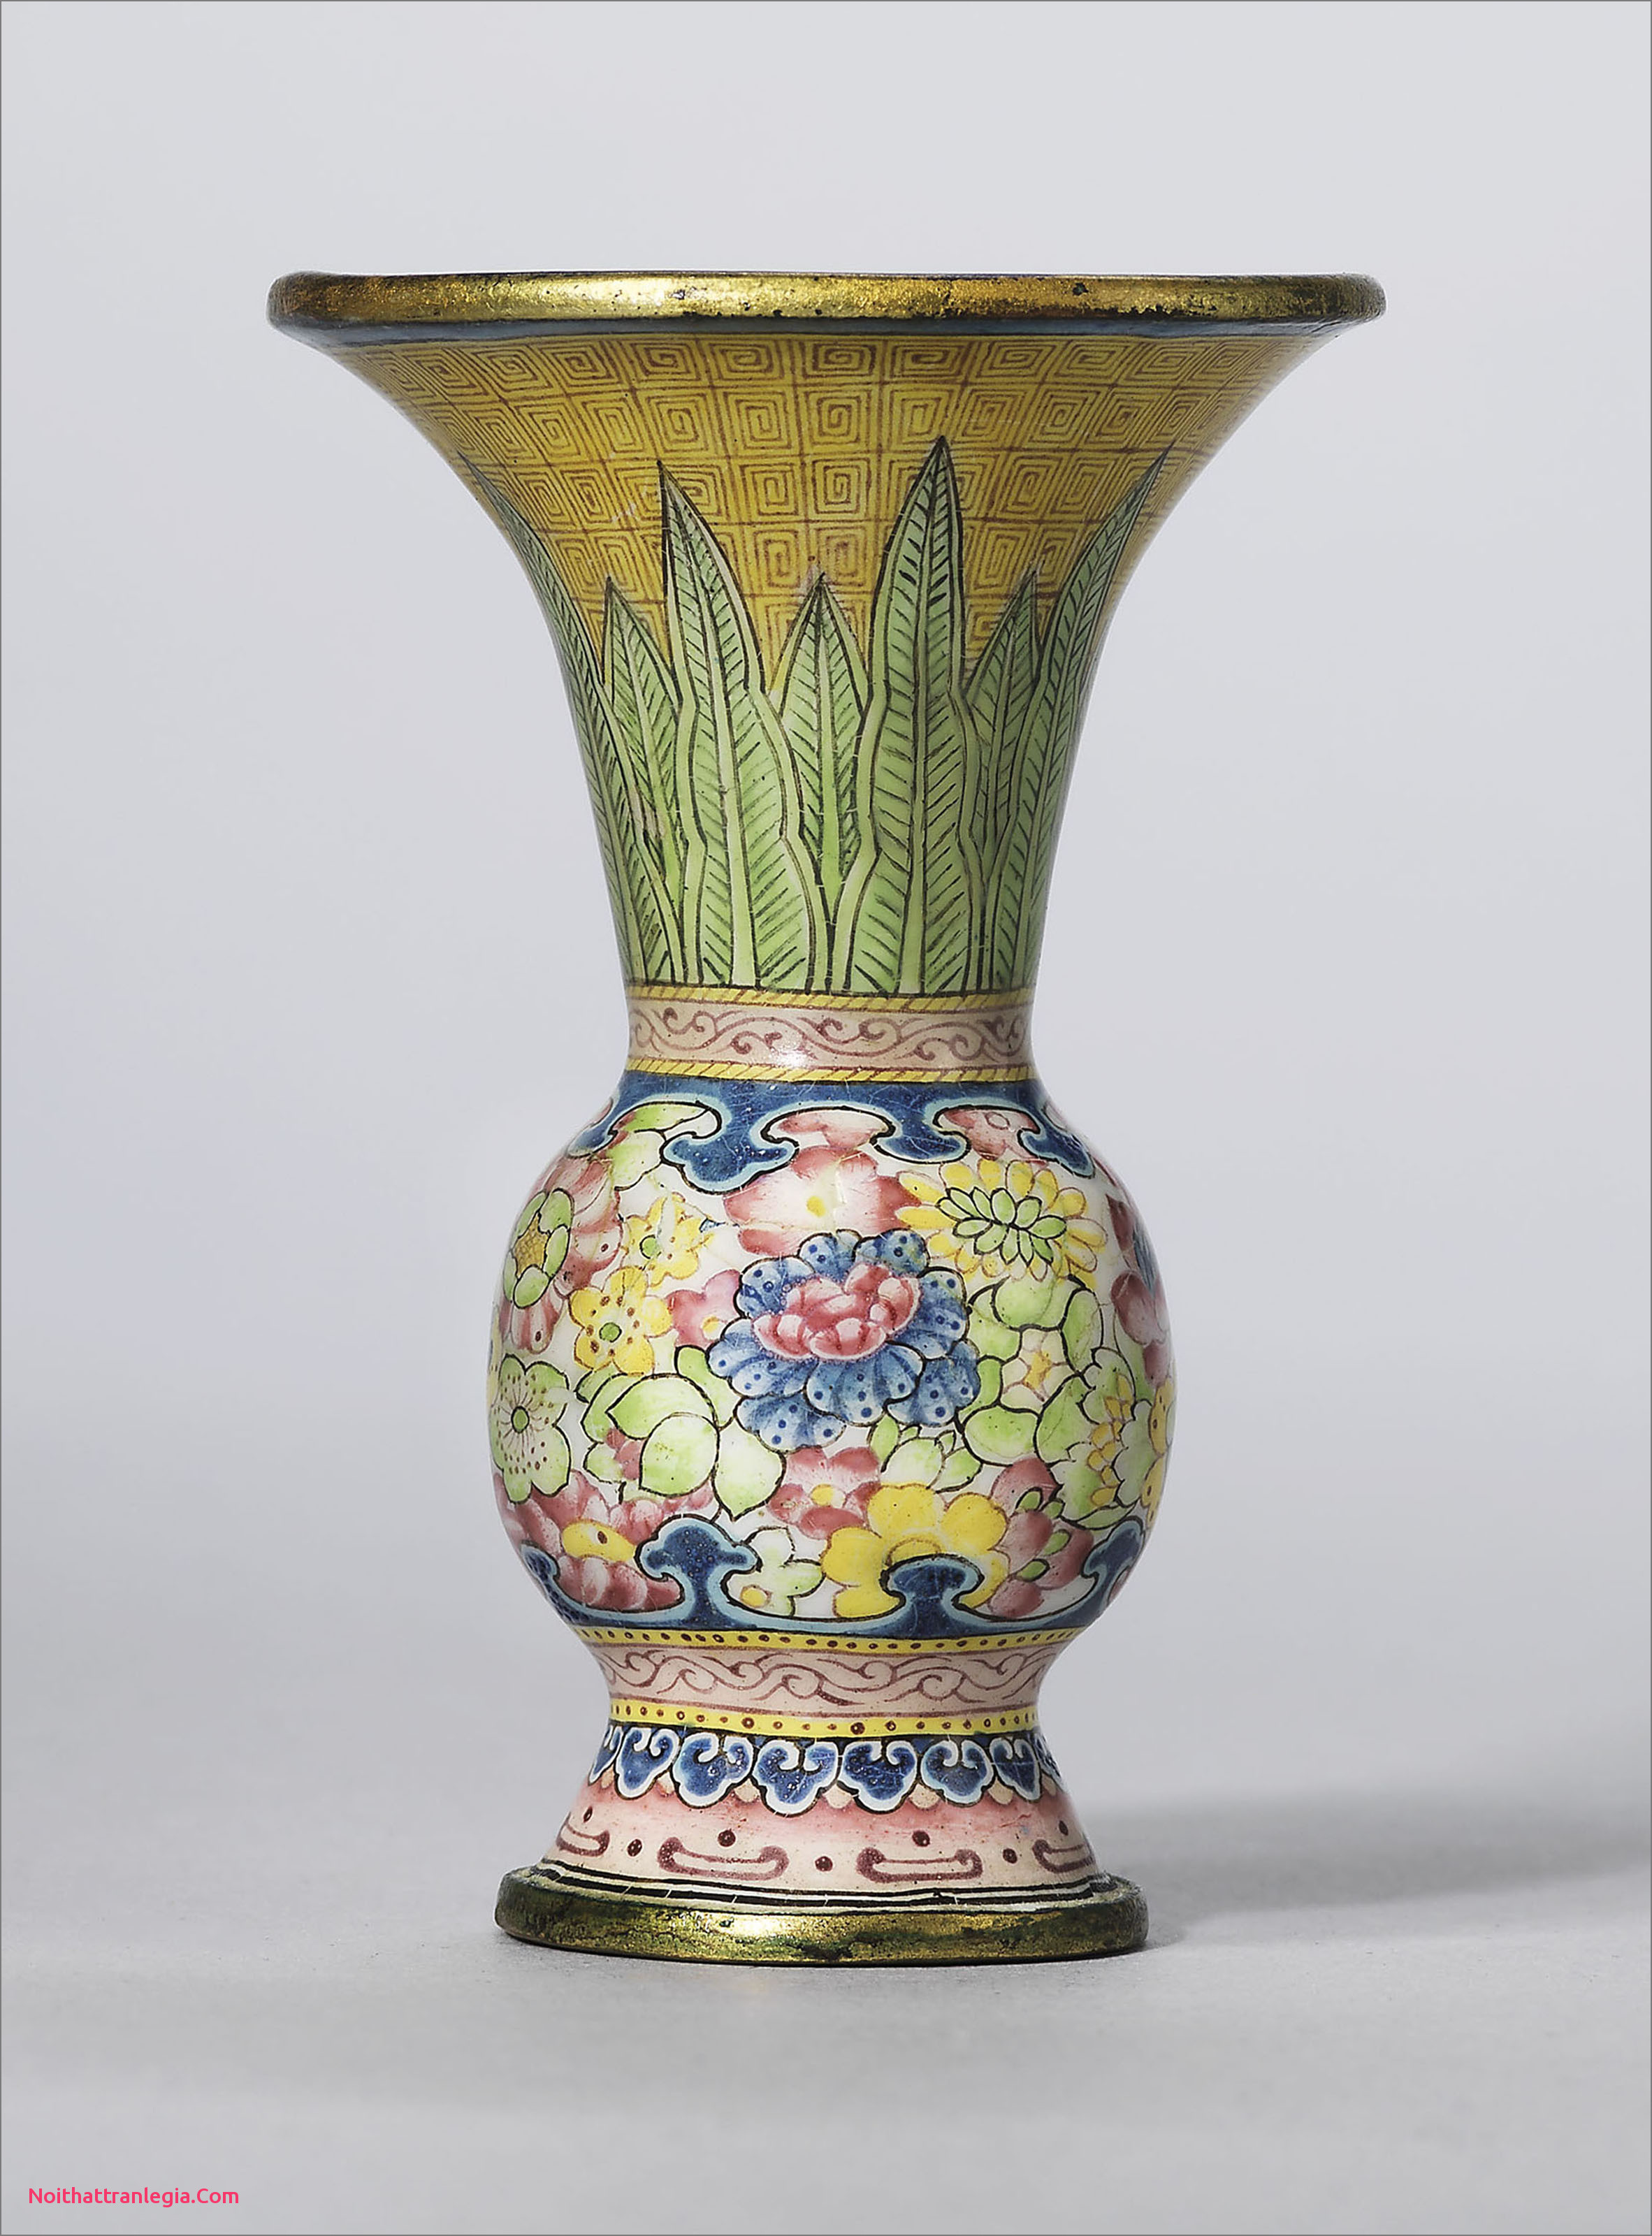 antique glass vases value of 20 chinese antique vase noithattranlegia vases design intended for chinese antique vase unique a guide to the symbolism of flowers on chinese ceramics of chinese antique vase